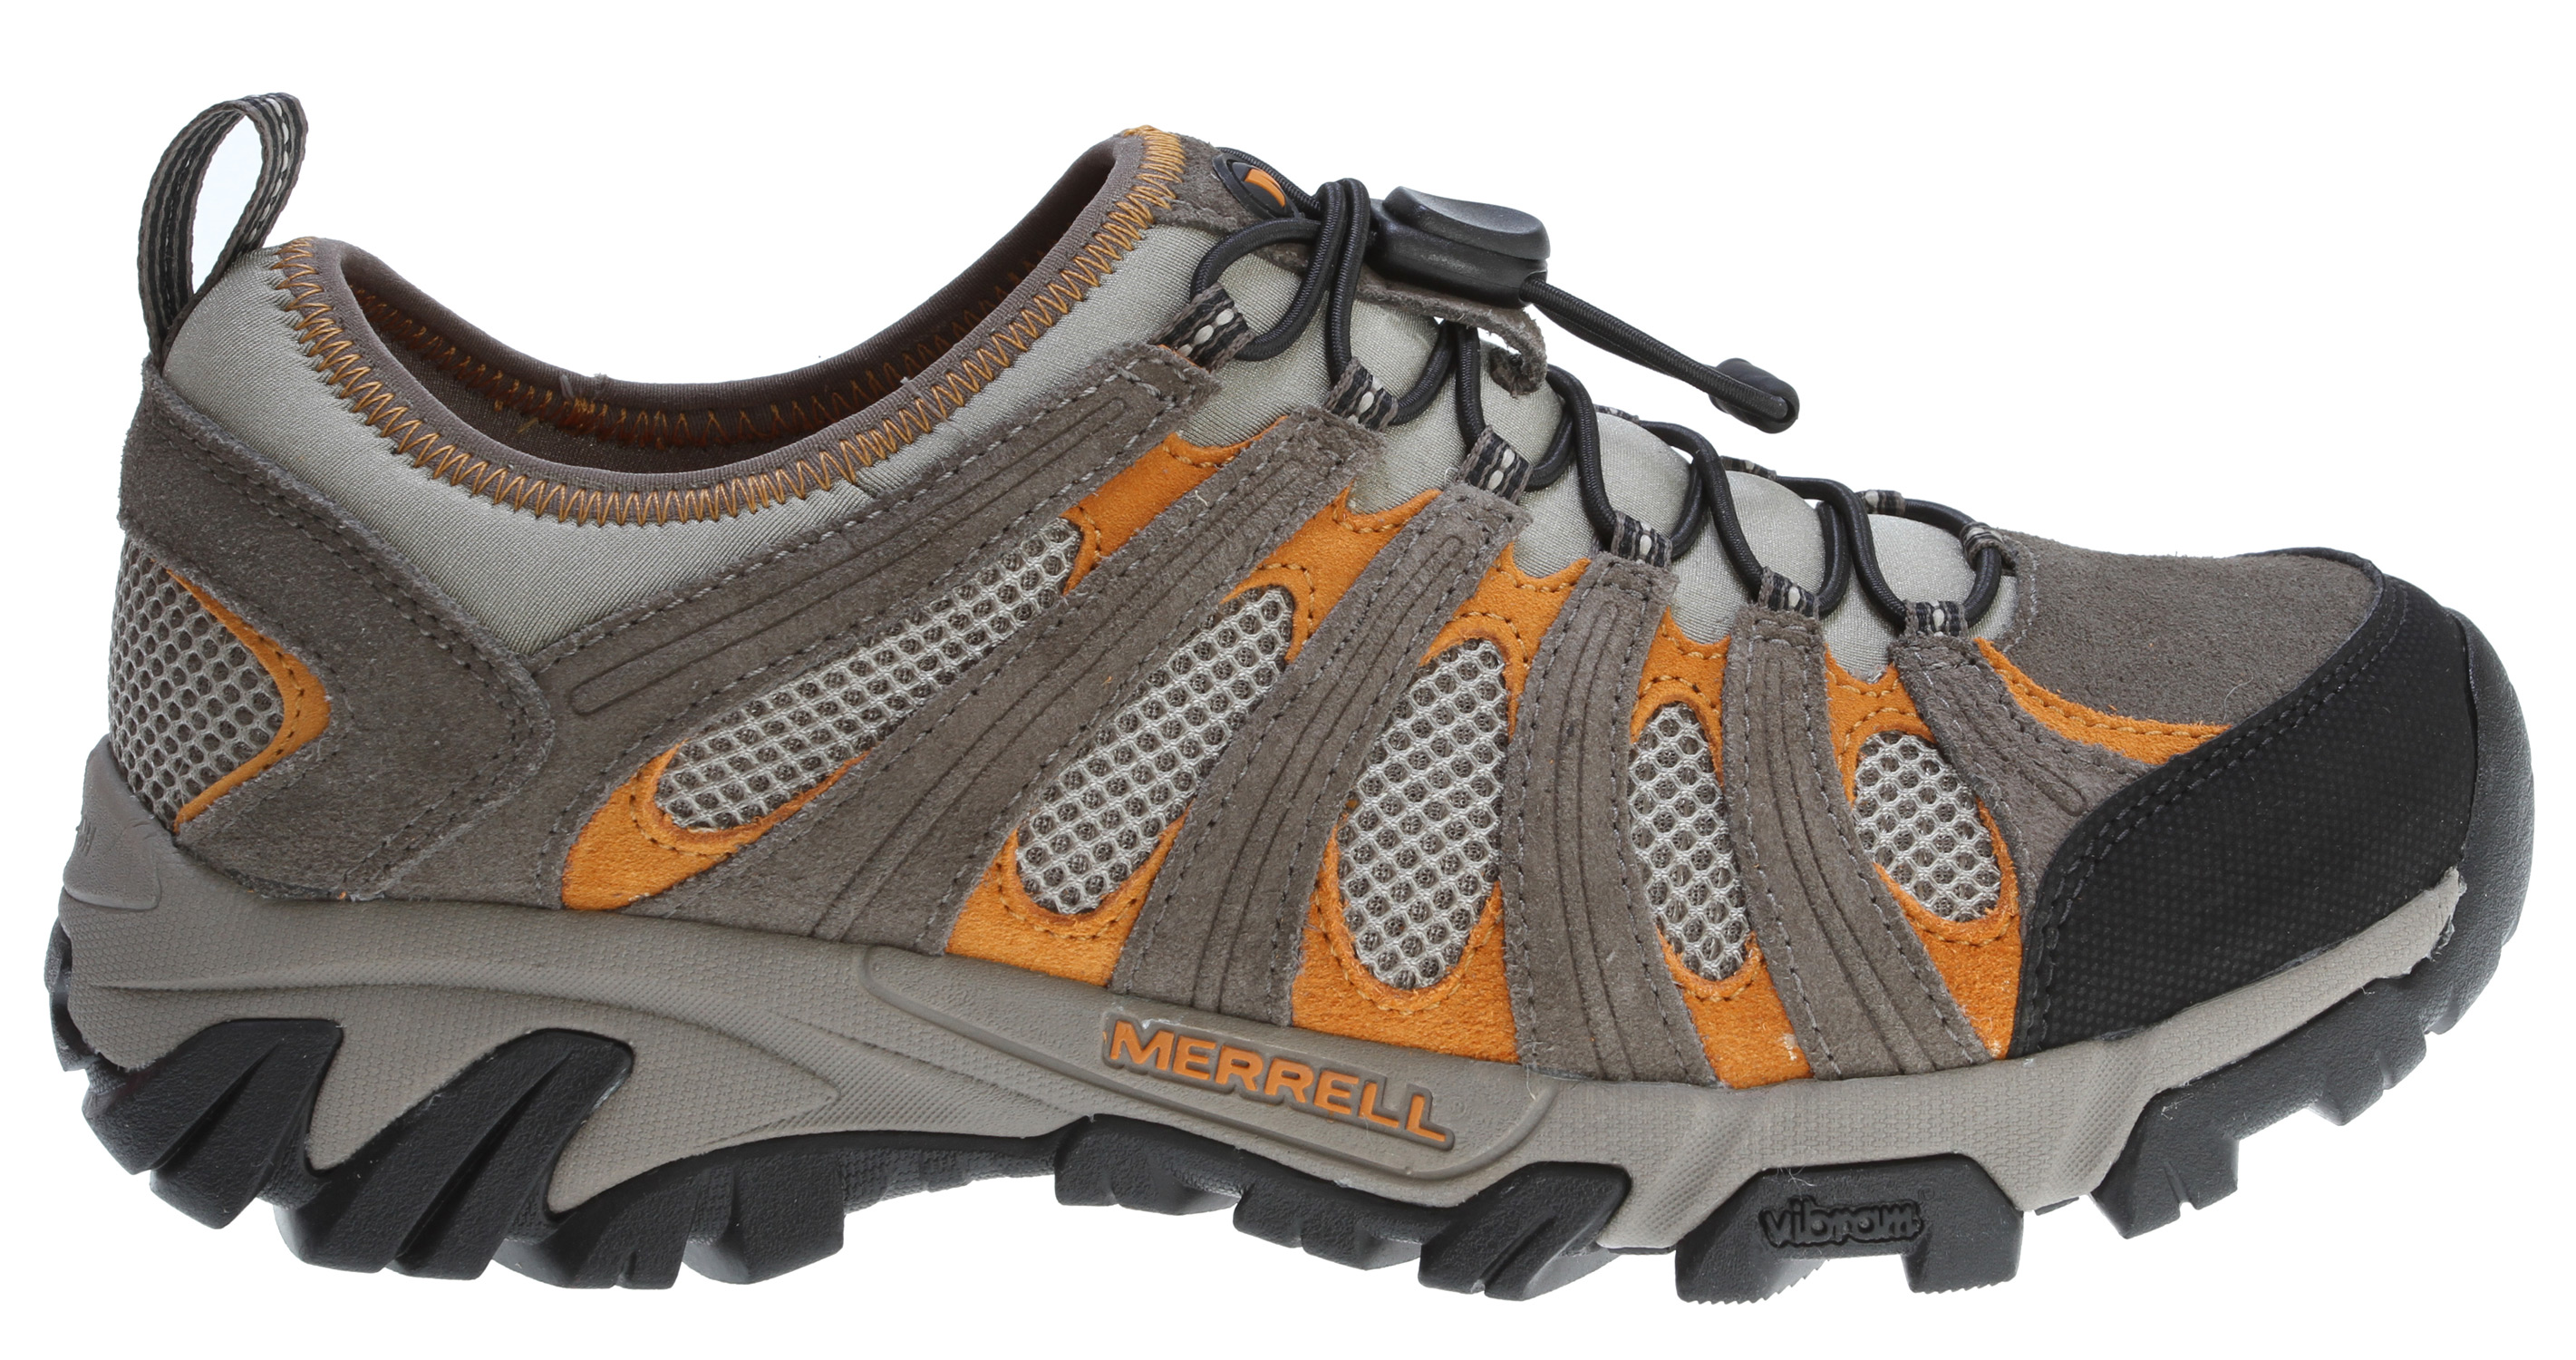 Camp and Hike Lightweight, comfortable and with an impressively short response time, our maze stretch will be your go-to shoe from trail to town . . reinforced with leather for lateral stability, its breathable mesh upper secures via one-cinch lacing to keep your cool in the heat, with a wicking mesh lining for dry feet . Grippy rubber sole sticks the landings .Key Features of the Merrell Geomorph Maze Stretch Hiking Shoes: Strobel construction offers flexibility and comfort Nubuck leather and mesh upper Low cut upper Elastic cord and lock lacing system for quick secure fit Mesh lining treated with aegis® antimicrobial solution Eva removable footbed treated with aegis® antimicrobial solution Merrell air cushion in the heel absorbs shock and adds stability Vibram® geomorph sole / tc5+ rubber - $69.95